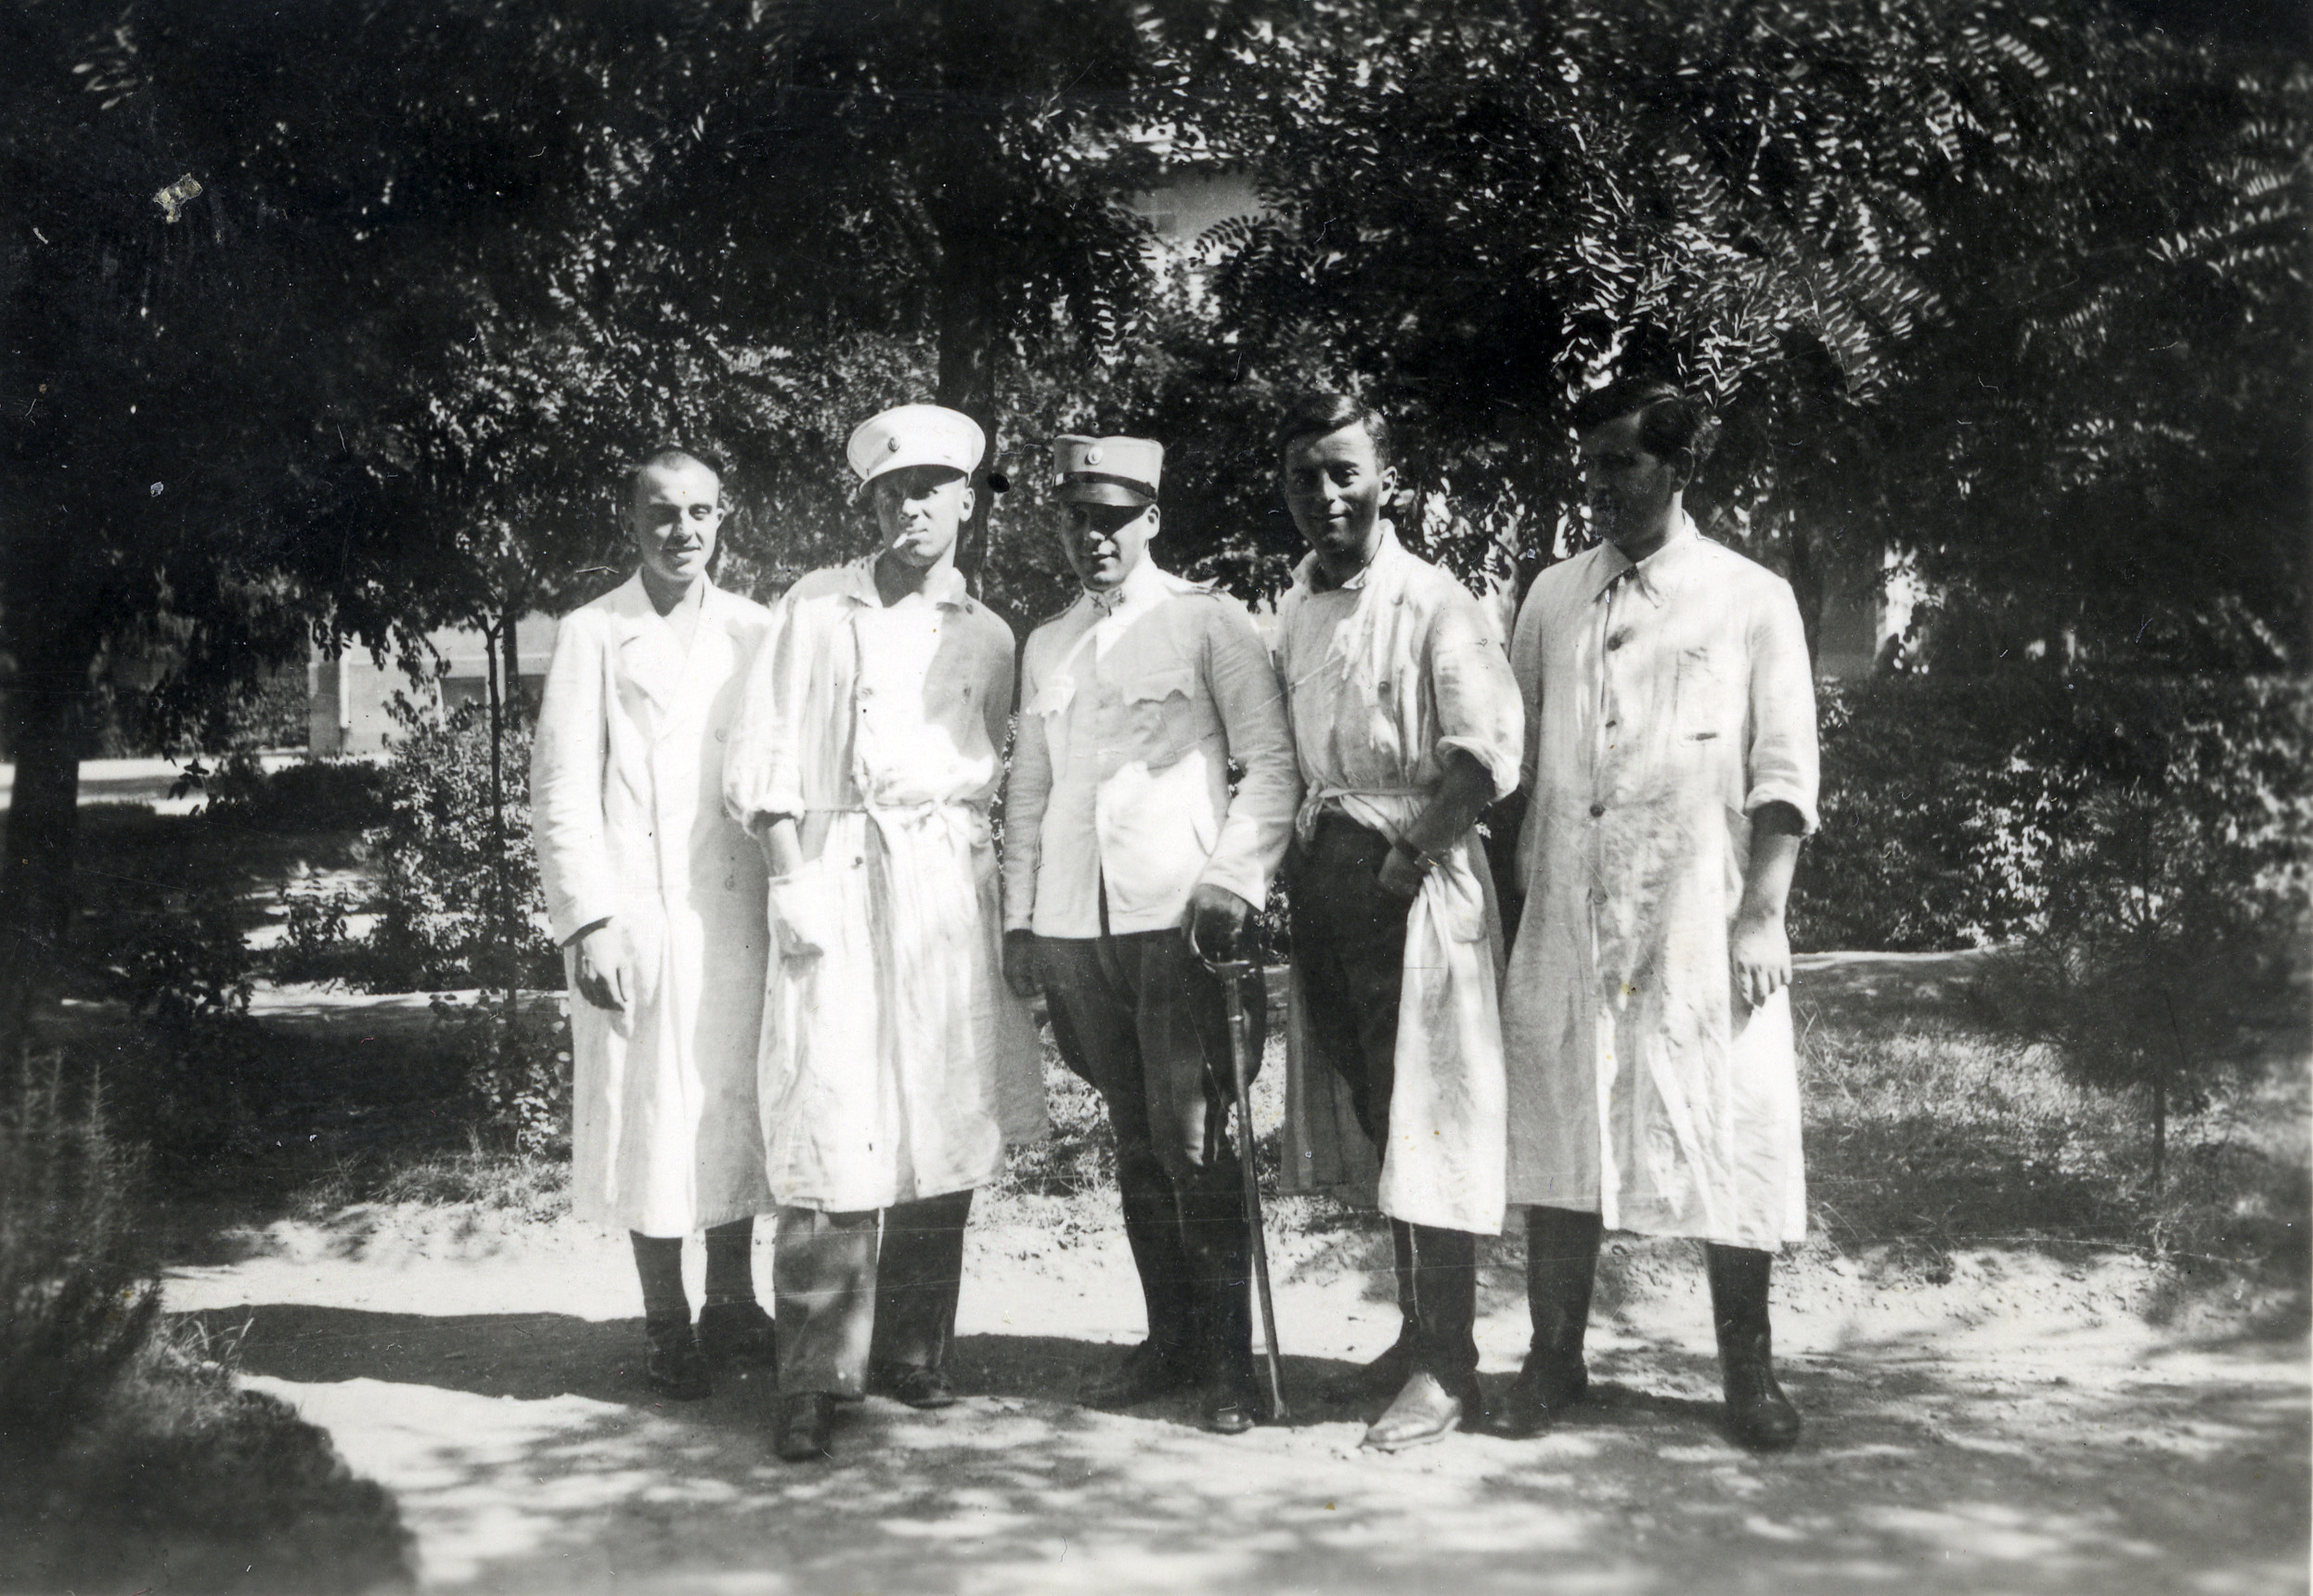 Group portrait of members of the Army Medical Corps in Yugoslavia.  Among those pictured (center) is Elio Fransevic, a Jewish pharmacist who was pulled from the Monopol Tobacco Factory prior to deportation to Treblinka, and drafted into the medical corps.